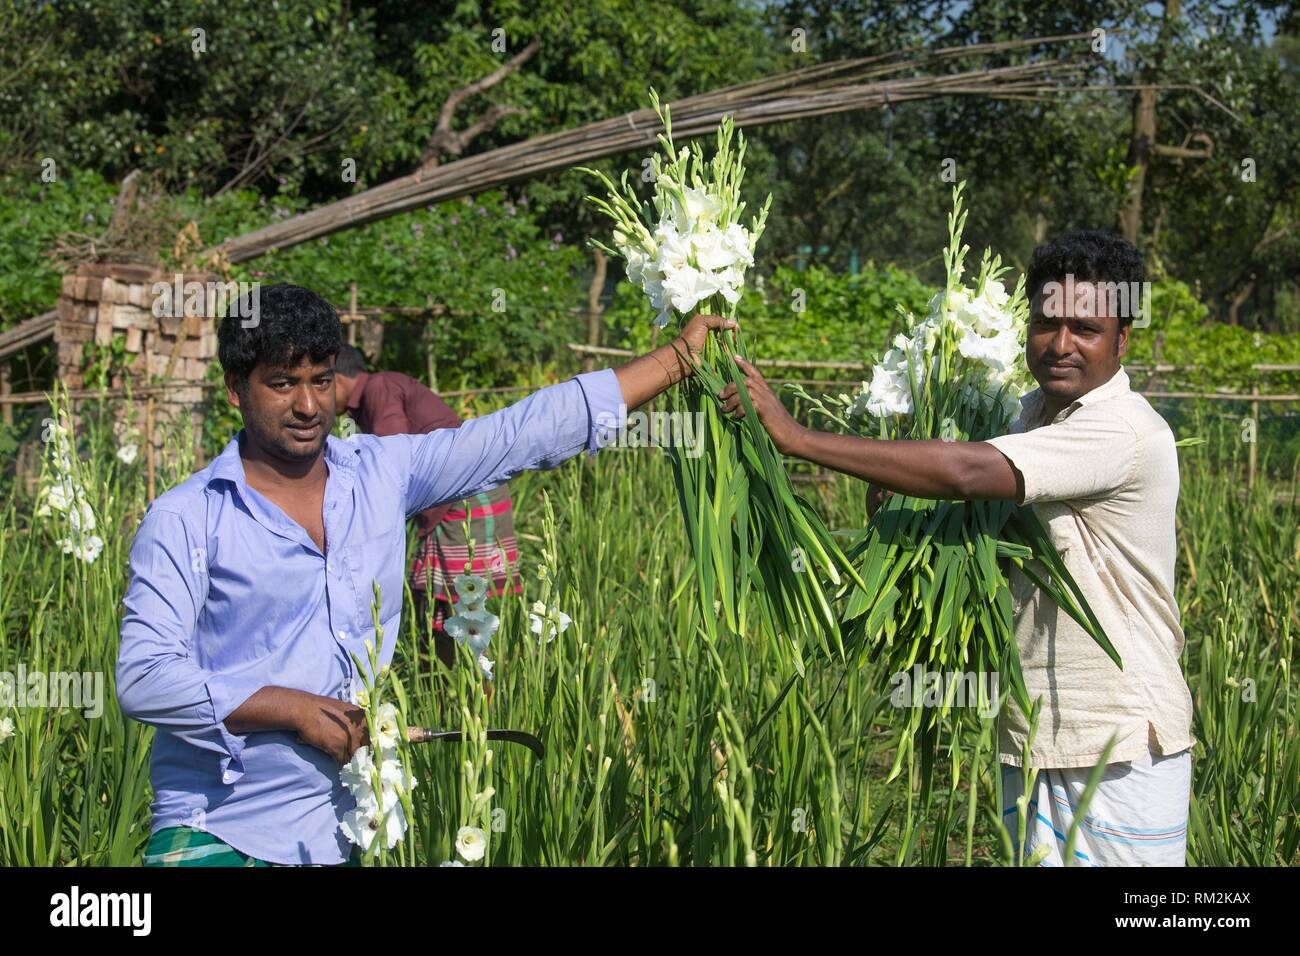 Gladiolus grows all the year and thatâ.s because its Profitable cultivation of gladiolus flower is gaining popularity among farmers in the district - Stock Image